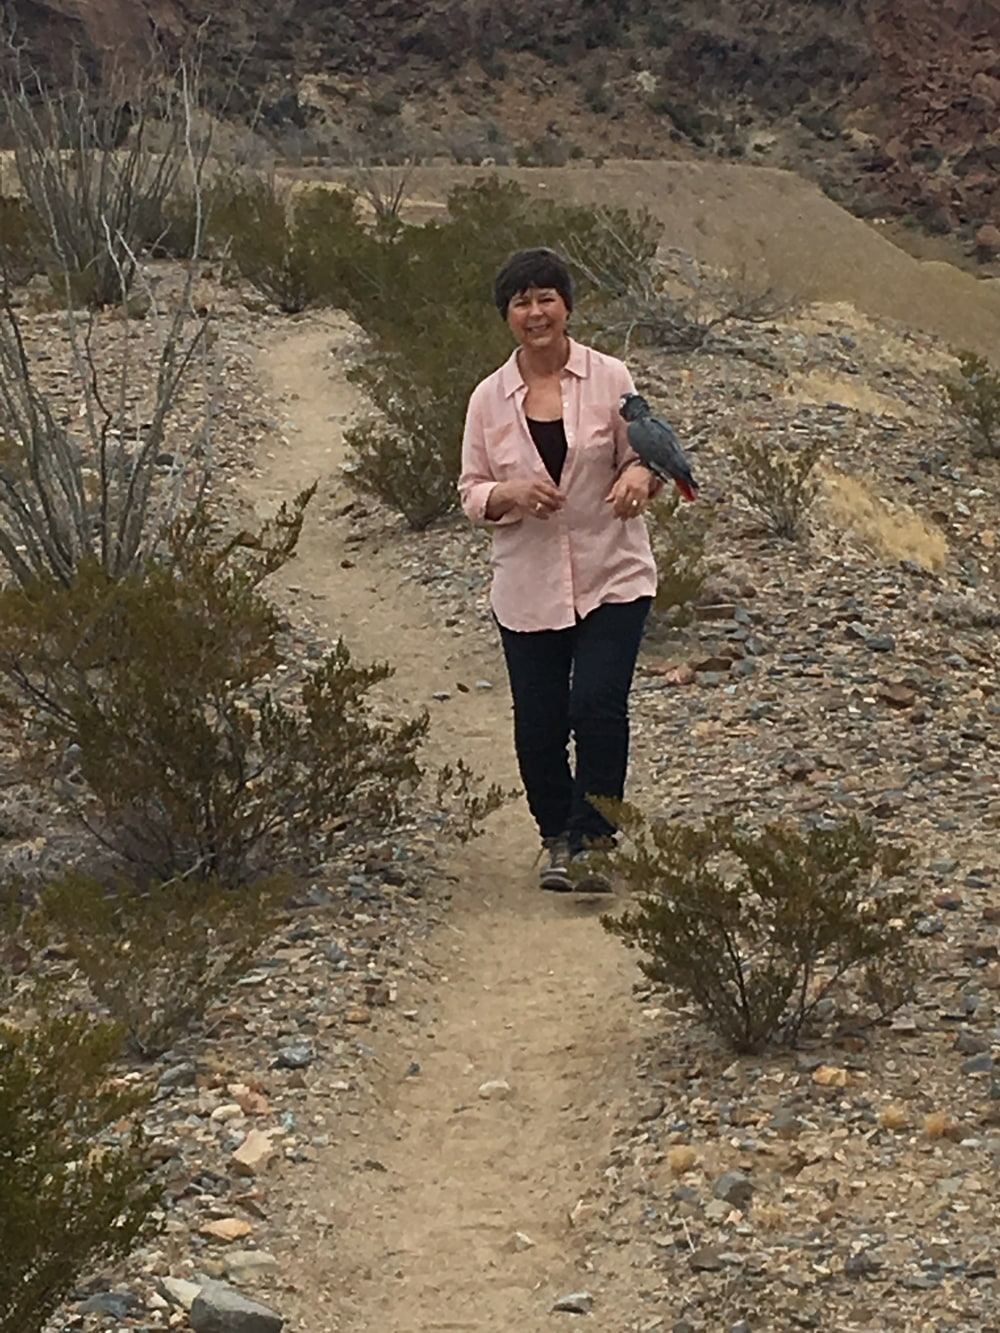 woman hiking thru cactus with parrot